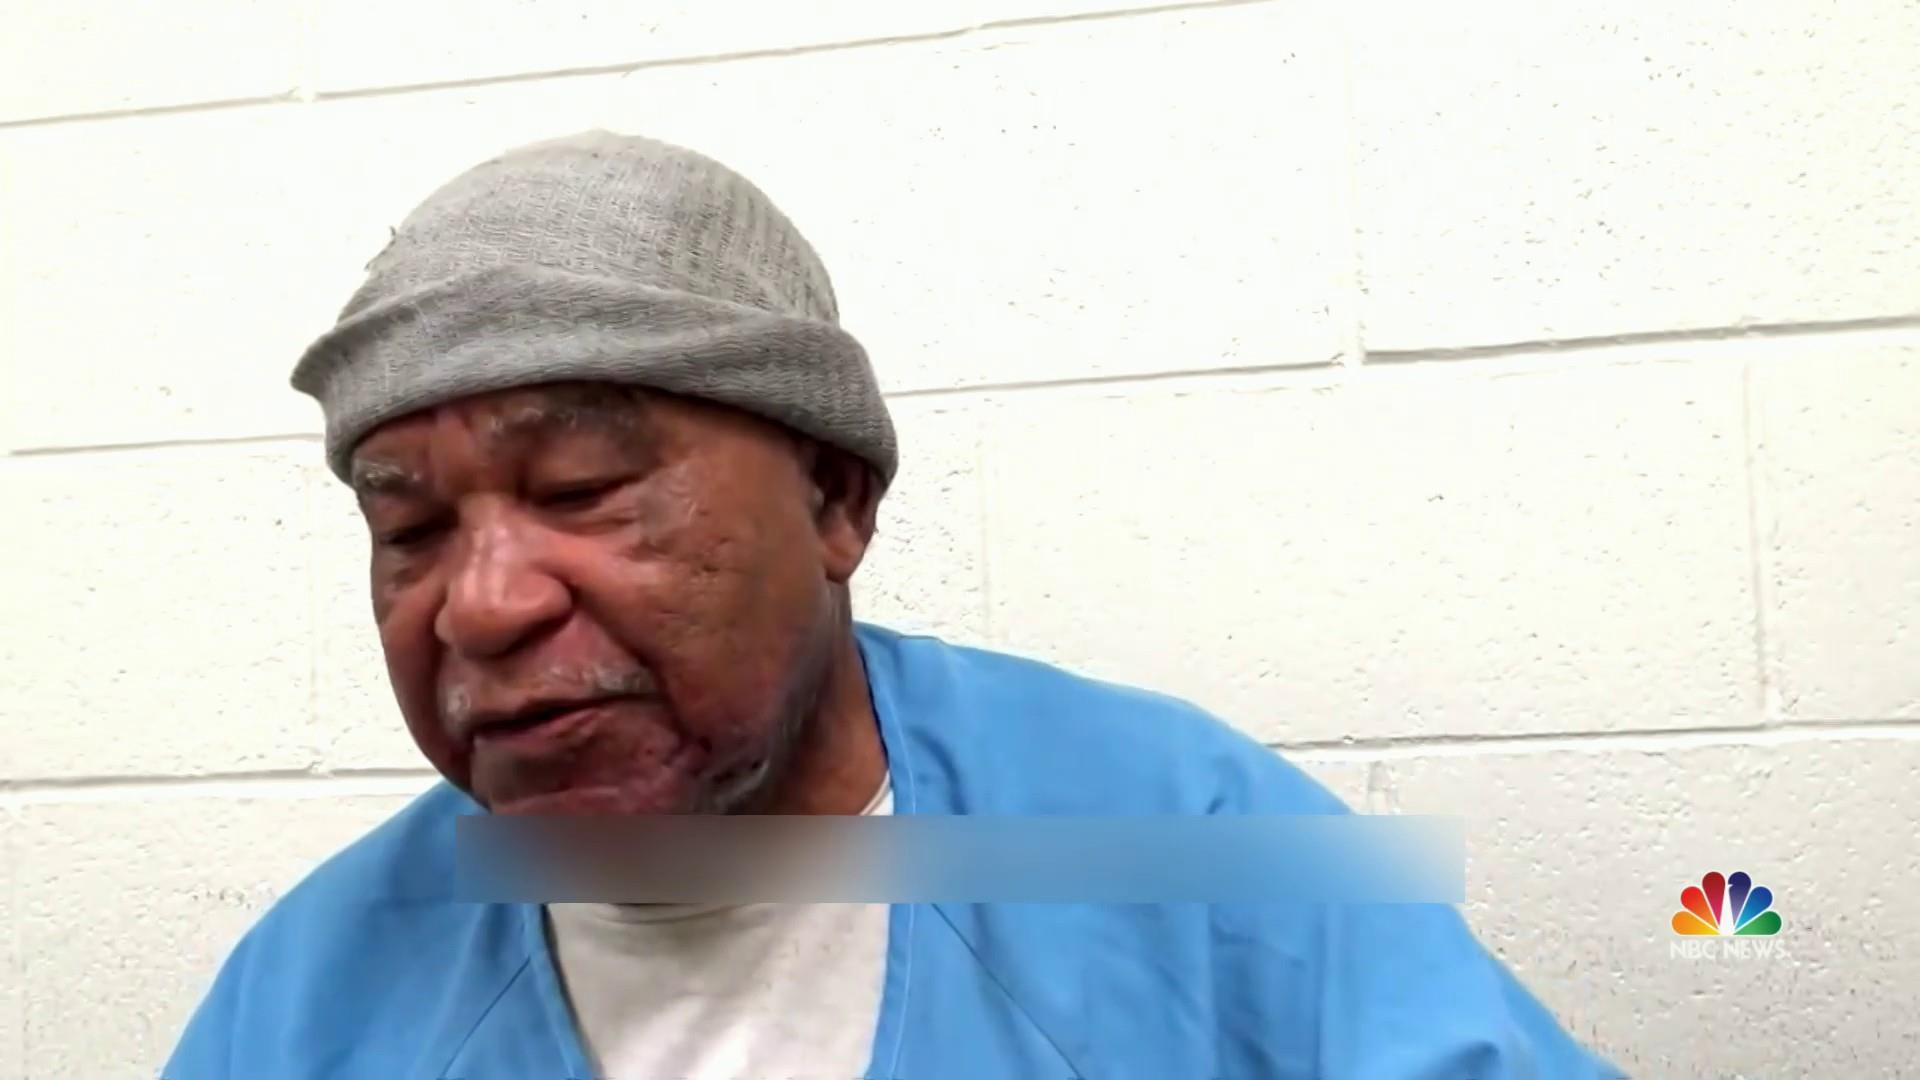 FBI confirms Samuel Little's confession: He is the worst serial killer in U.S. history